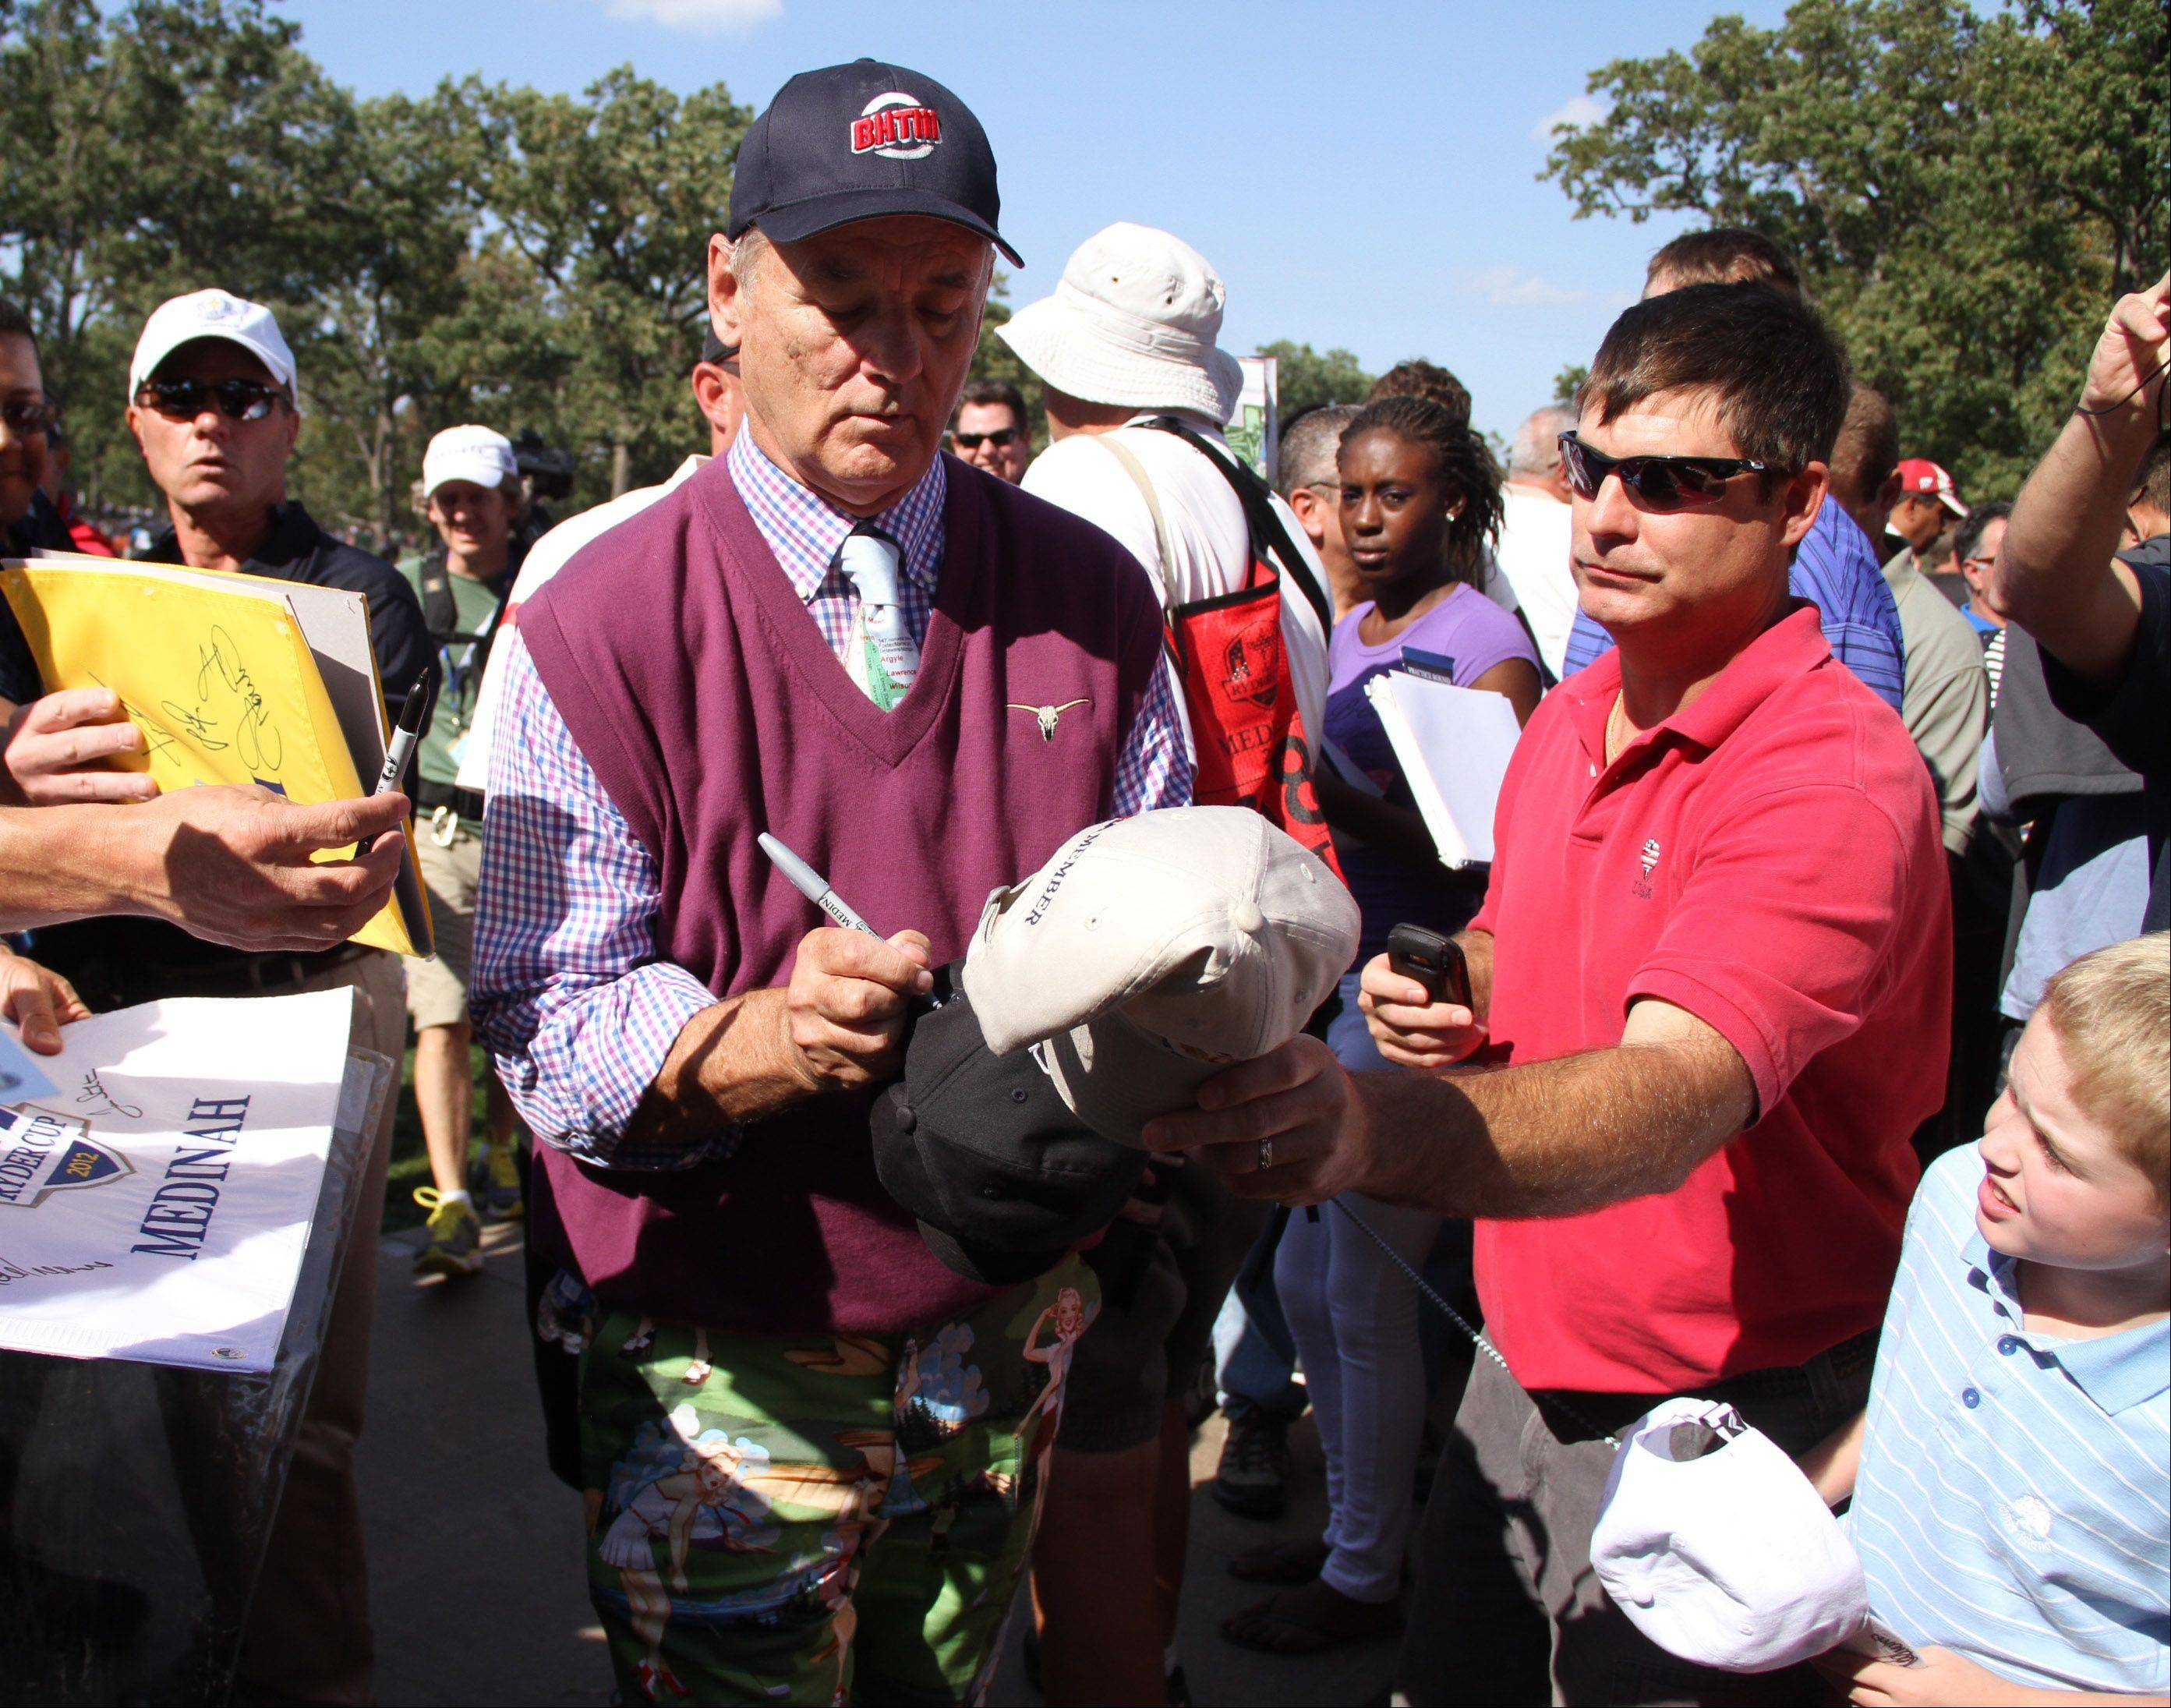 Comedian Bill Murray signs autographs while walking at Medinah.